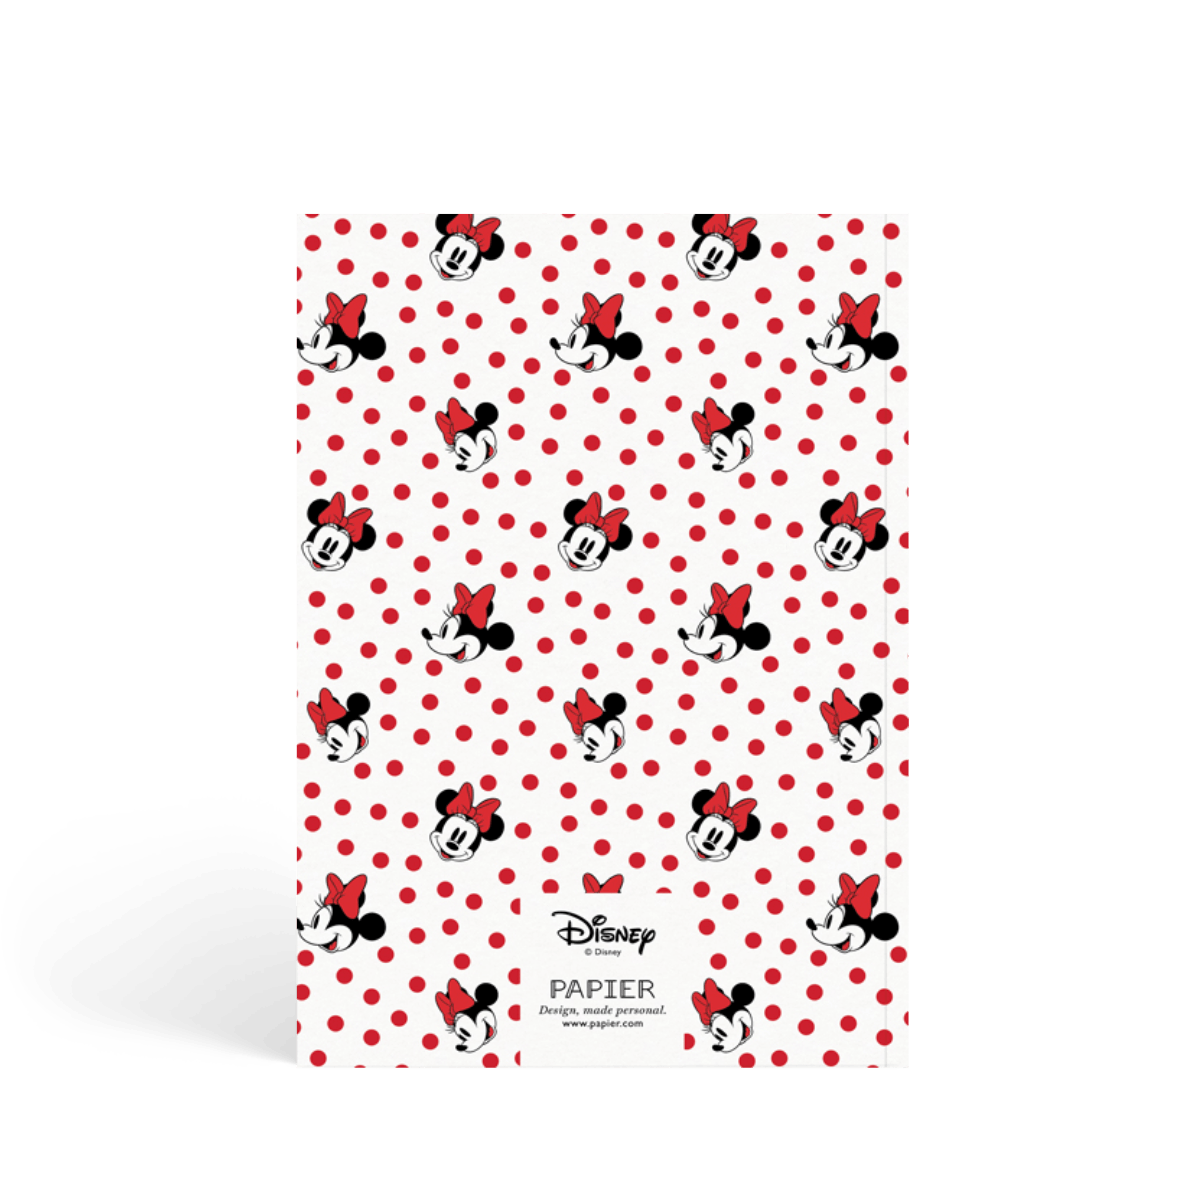 Https%3a%2f%2fwww.papier.com%2fproduct image%2f35917%2f5%2fminnie mouse 8991 back 1524568465.png?ixlib=rb 1.1